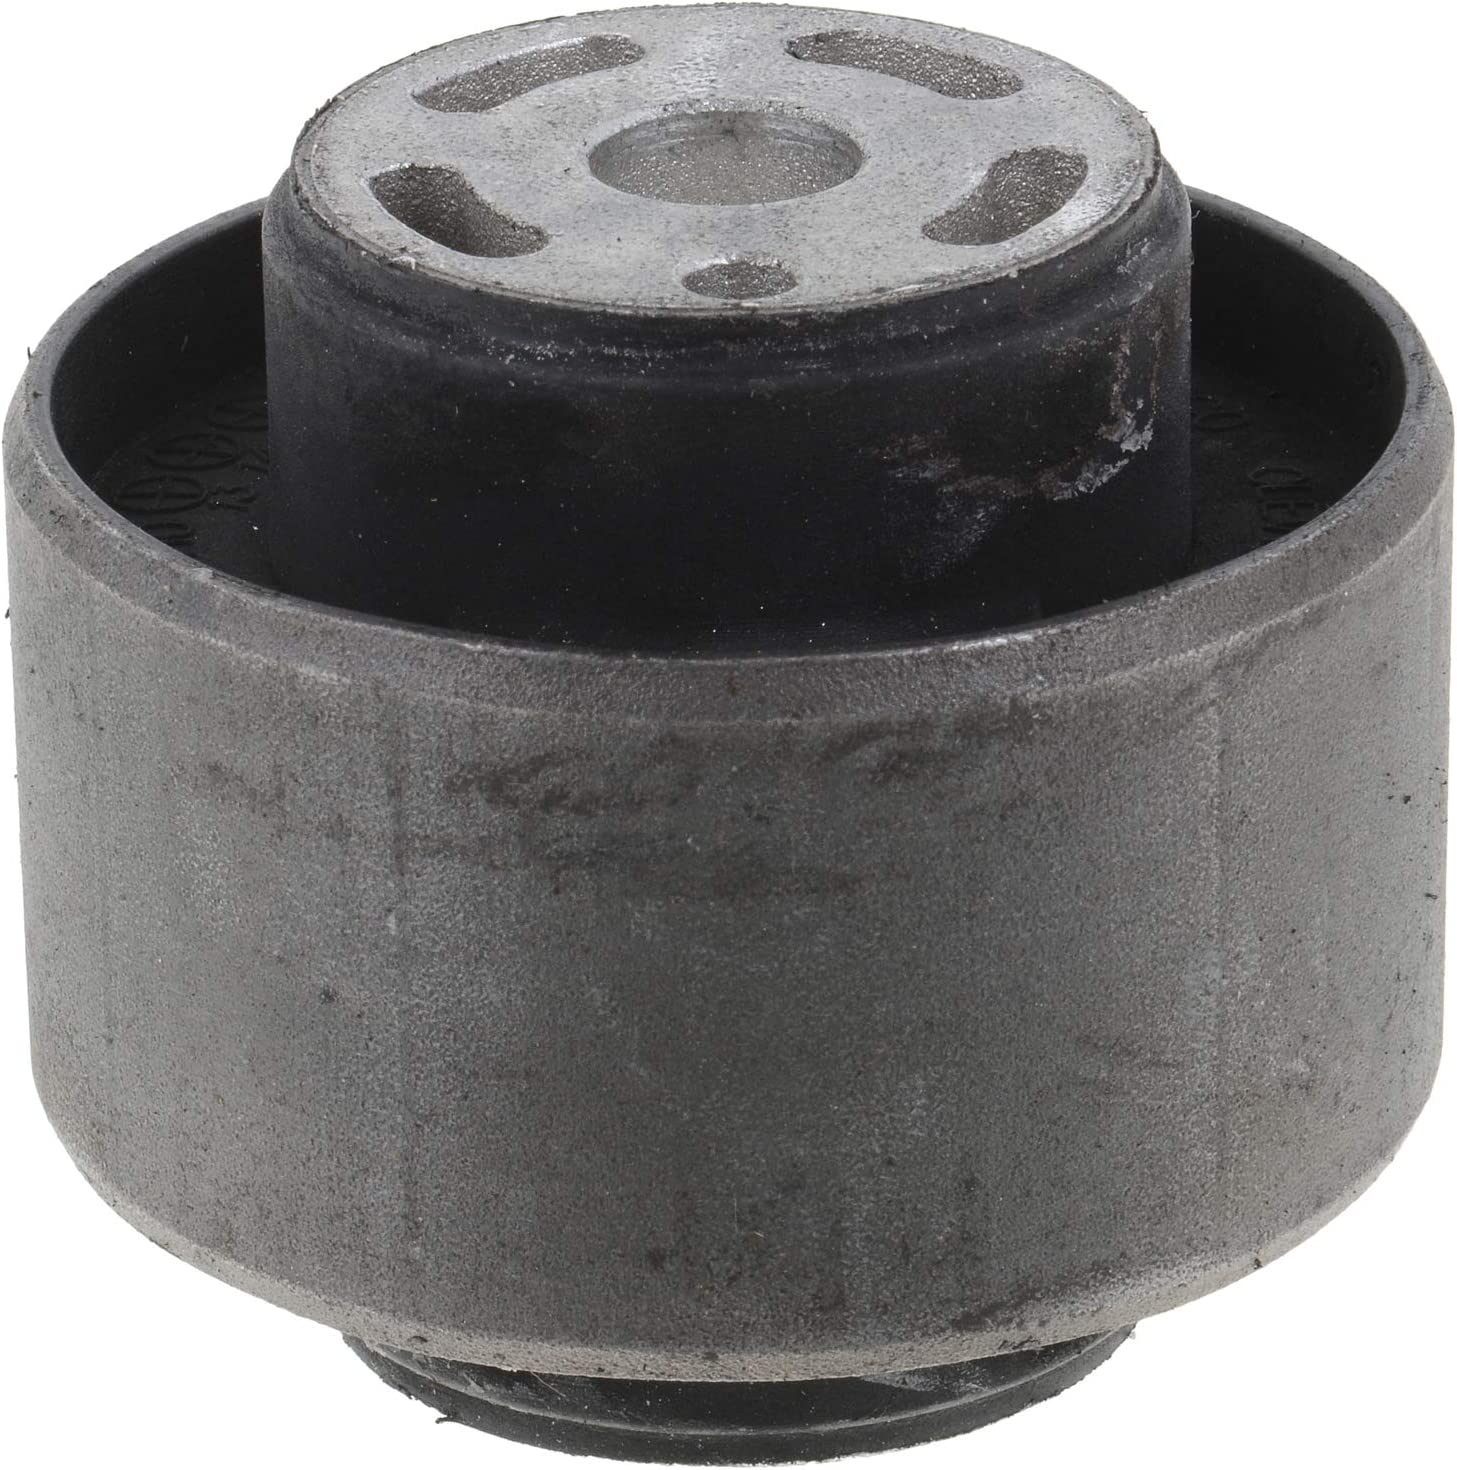 2009-2018 and other applications Front Lower Rearward TRW JBU1817 Suspension Control Arm Bushing for Dodge Journey